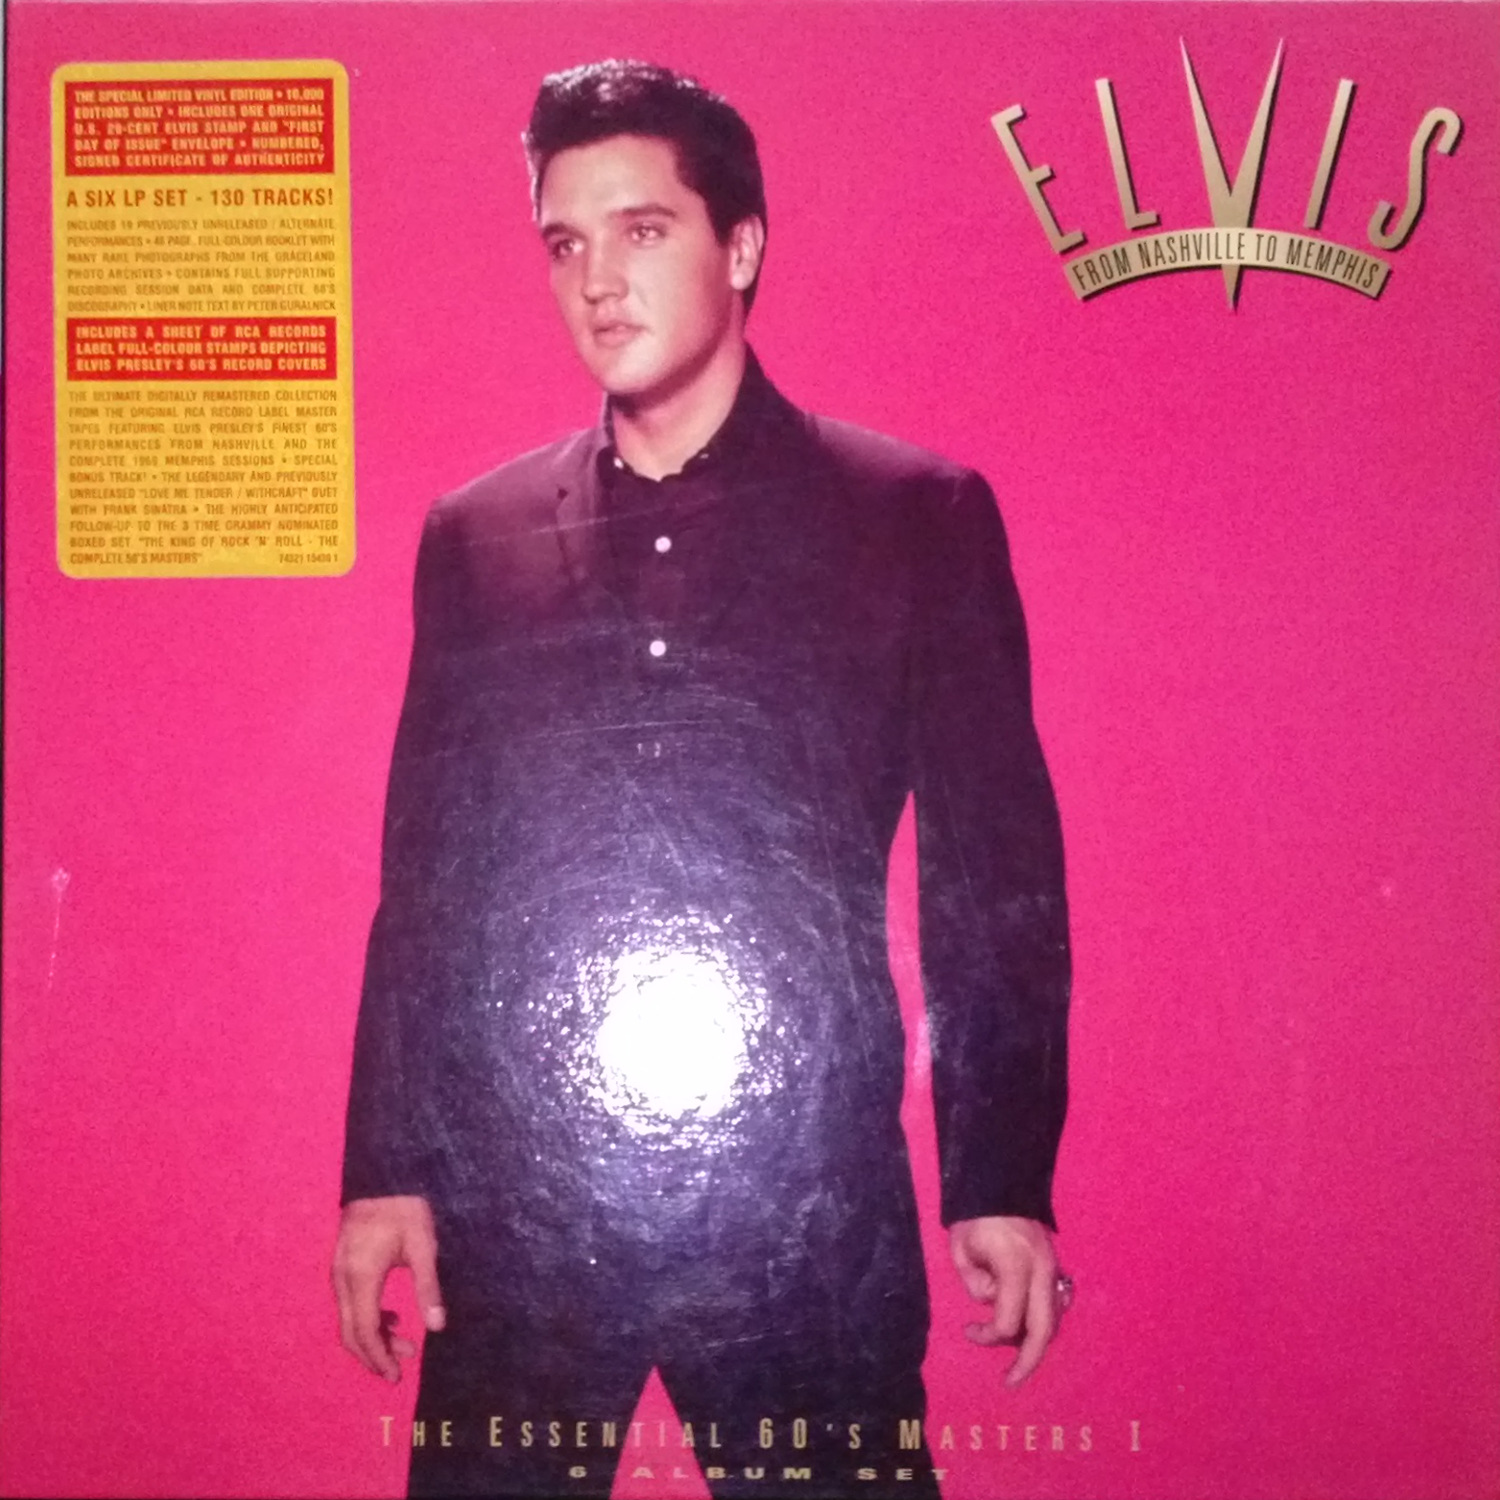 ELVIS - FROM NASHVILLE TO MEMPHIS - THE ESSENTIAL 60'S MASTERS Cam00098h3slf